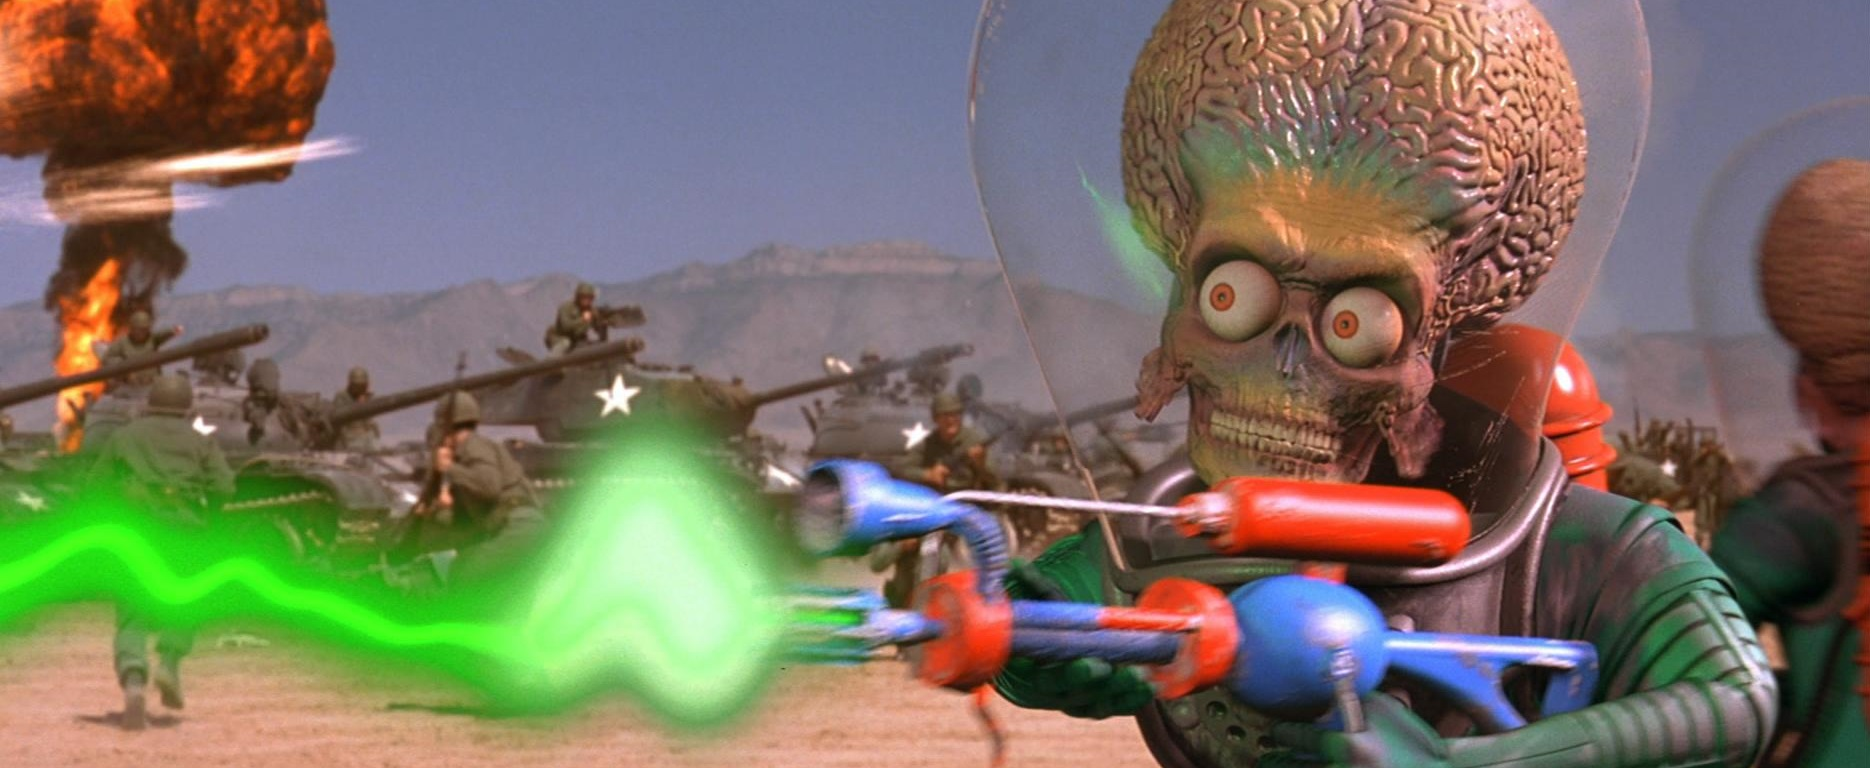 Mars Attacks - film scene - alien weapon energy laser